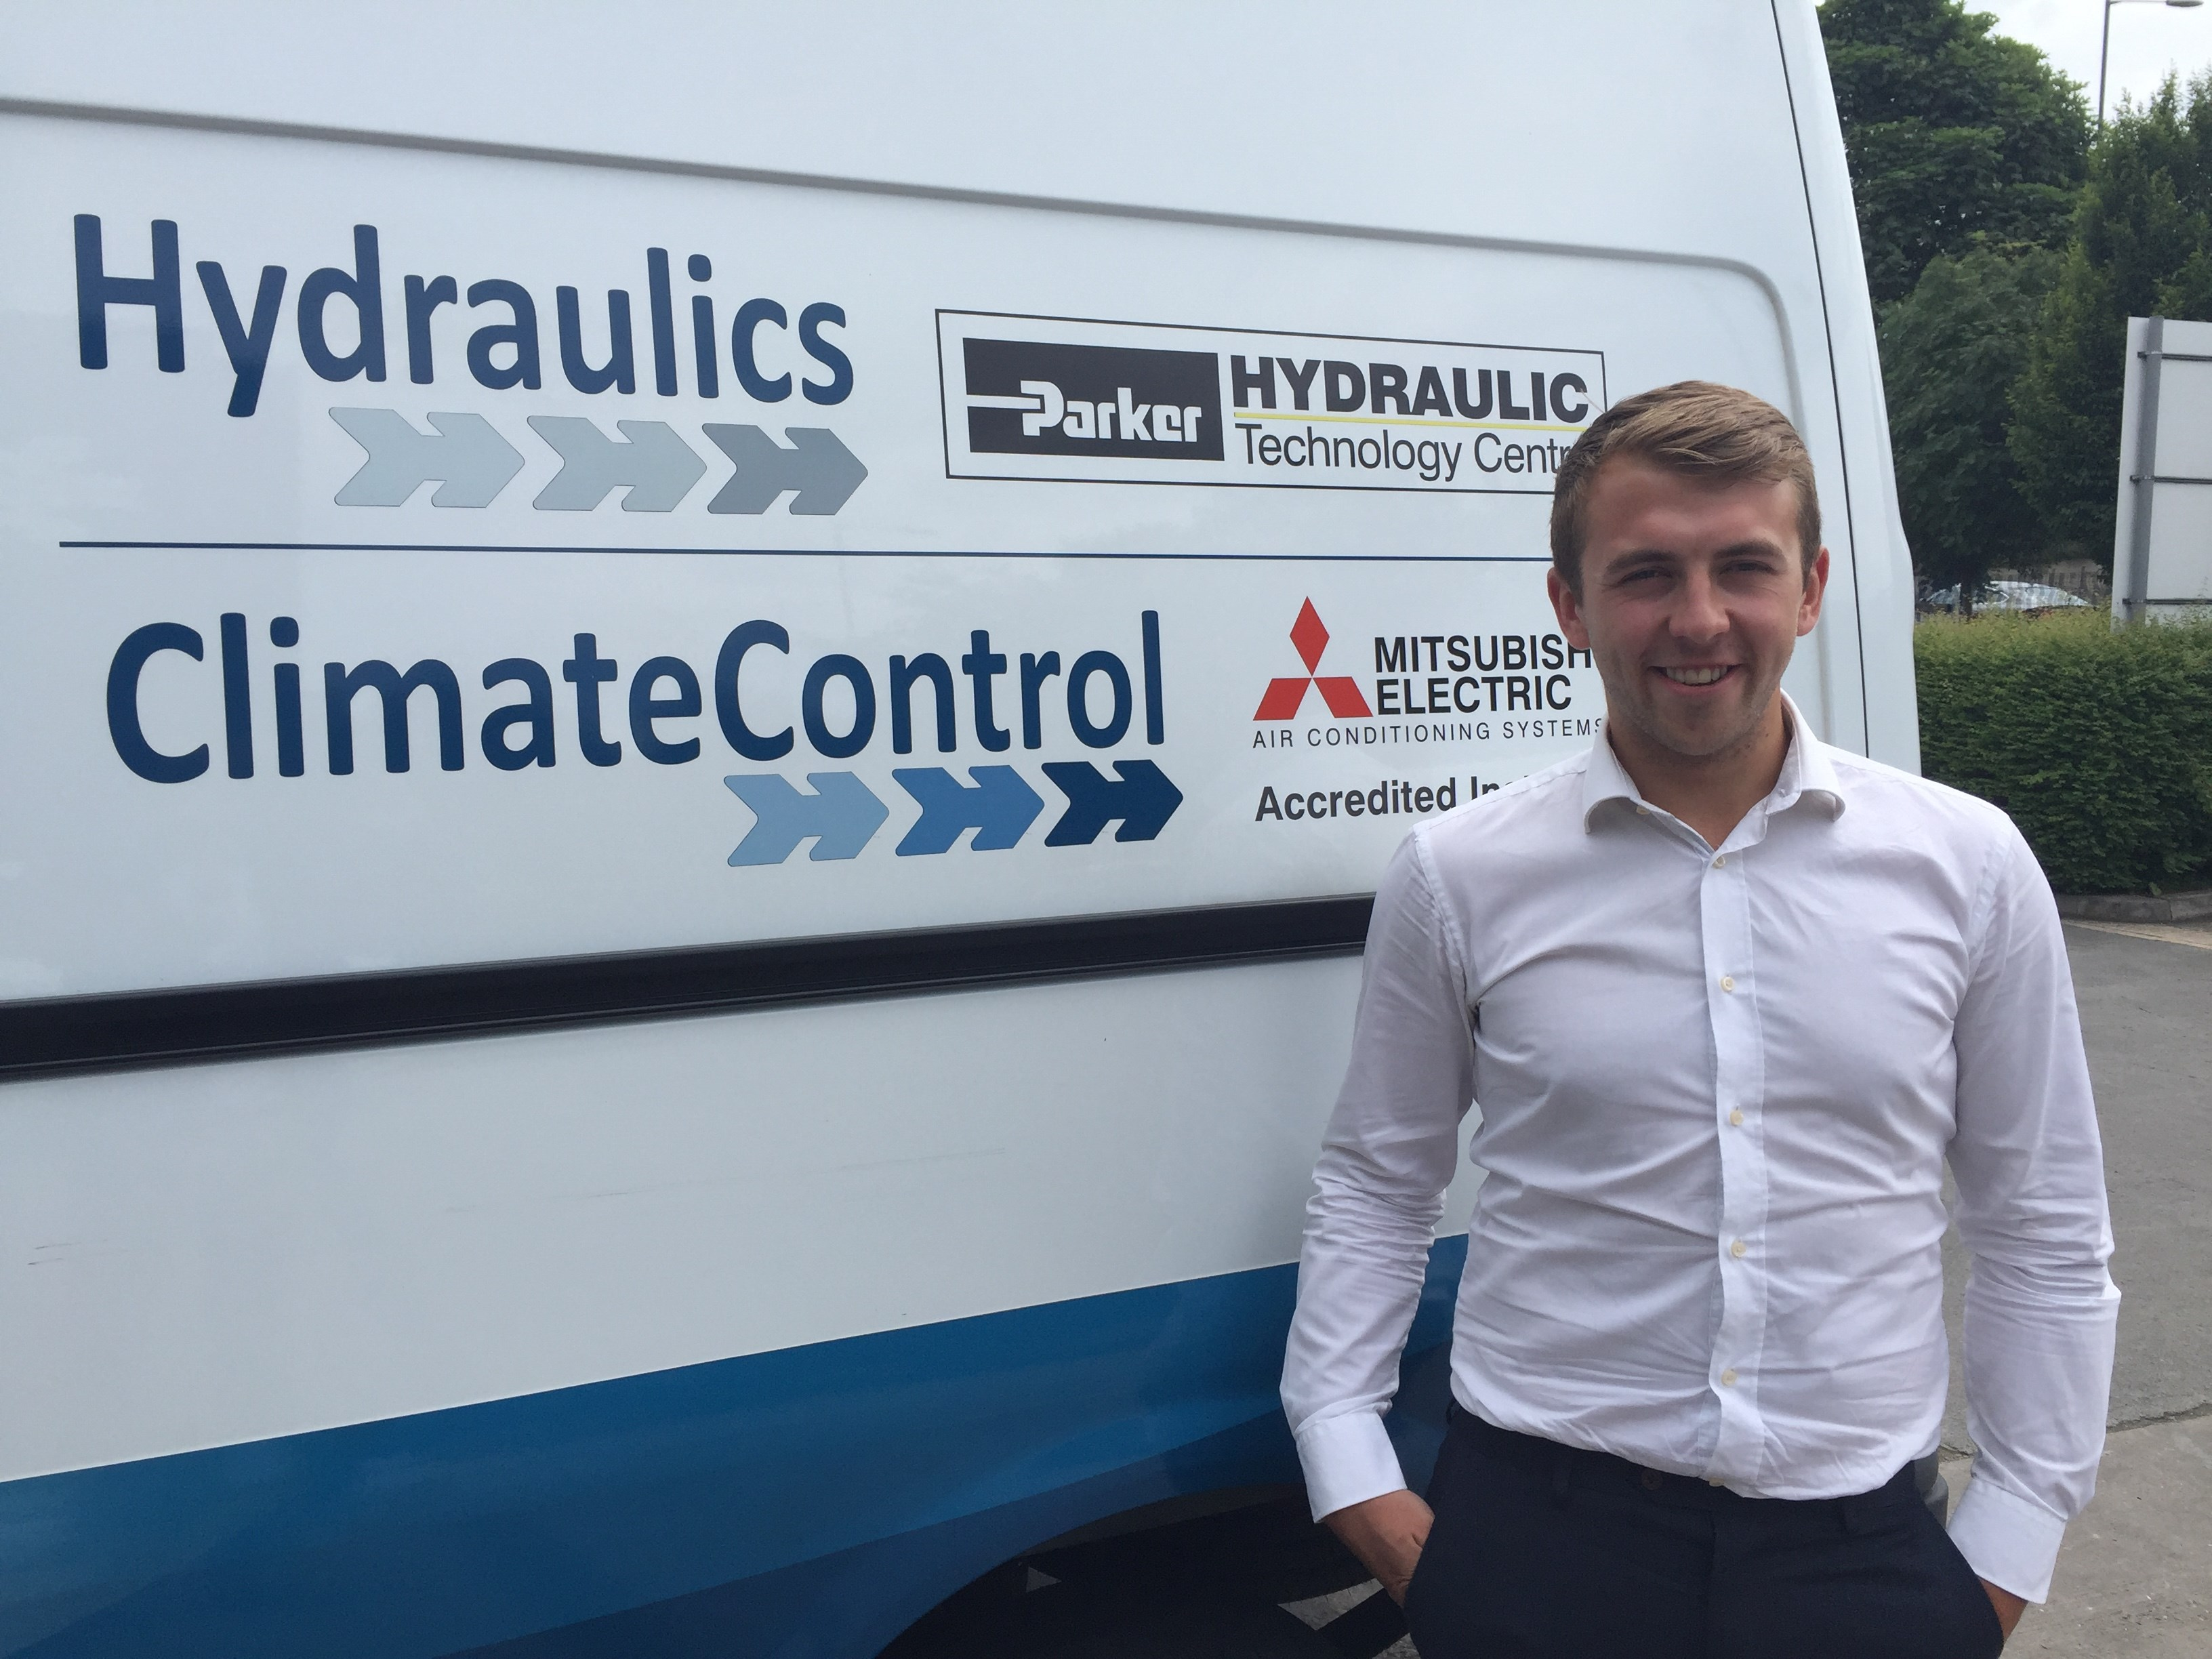 Jake Tyers joins Tidyco as Marketing Assistant.